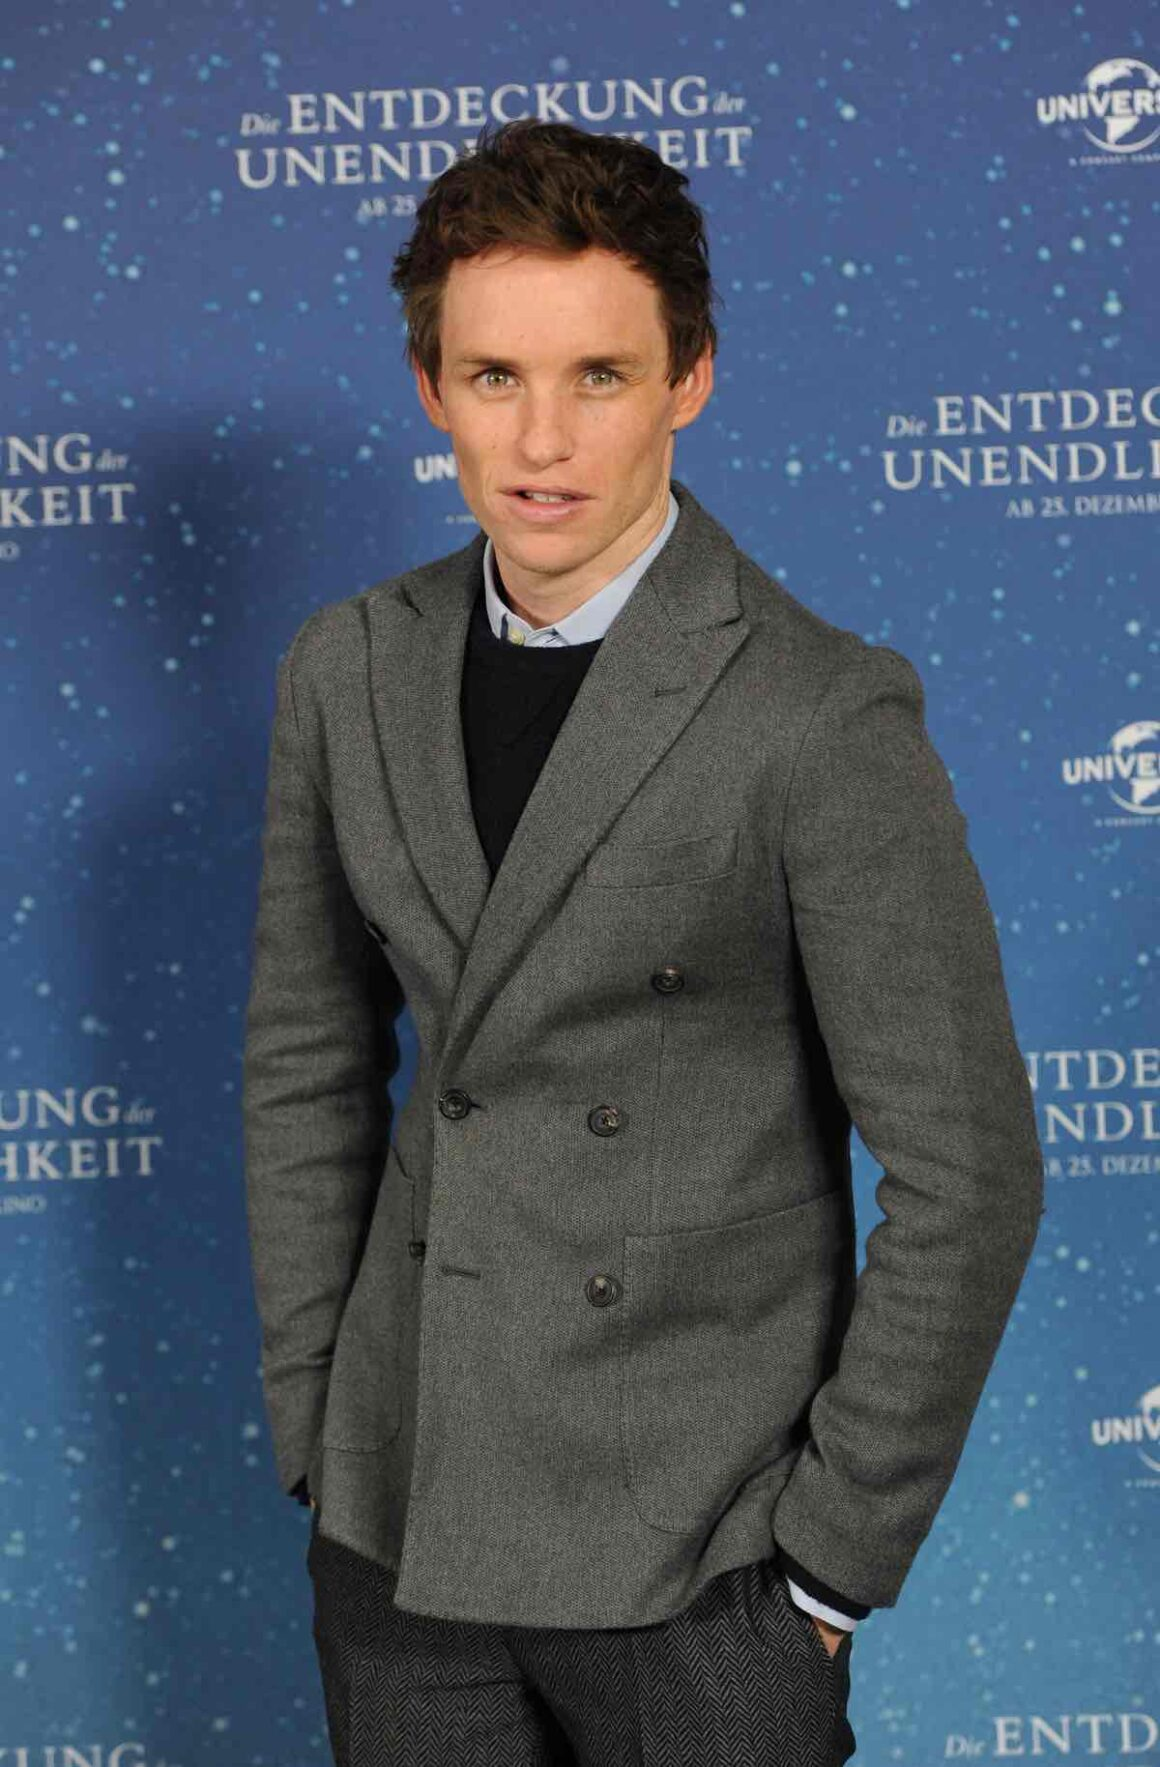 Eddie Redmayne attends 'The Theory of Everything' Photocall In Munich